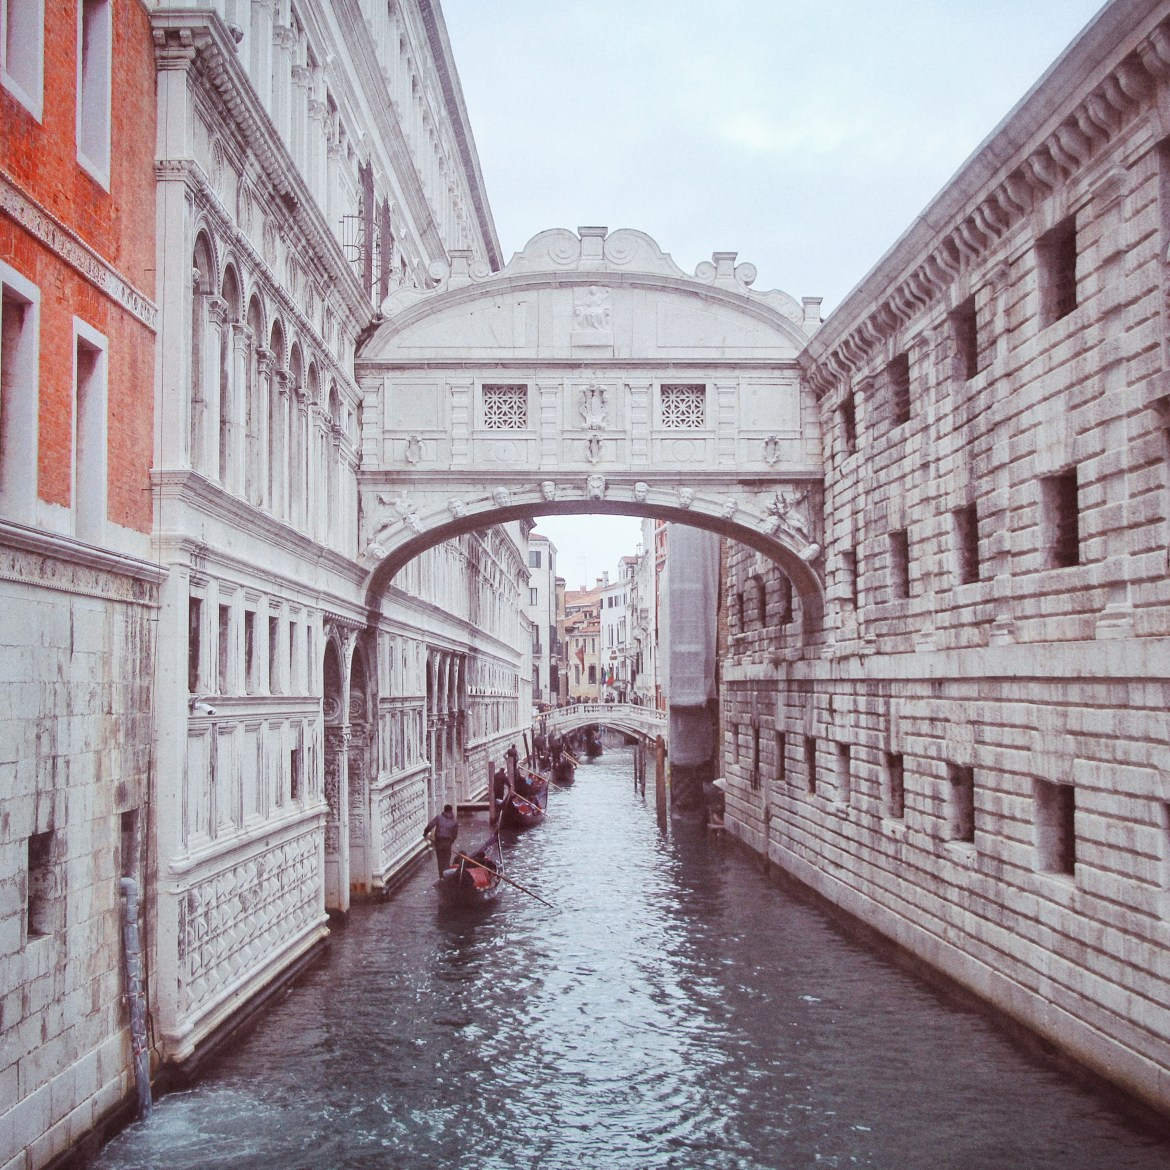 Venice, Bridge of sigh, Italy travel diary, Huesofme blog